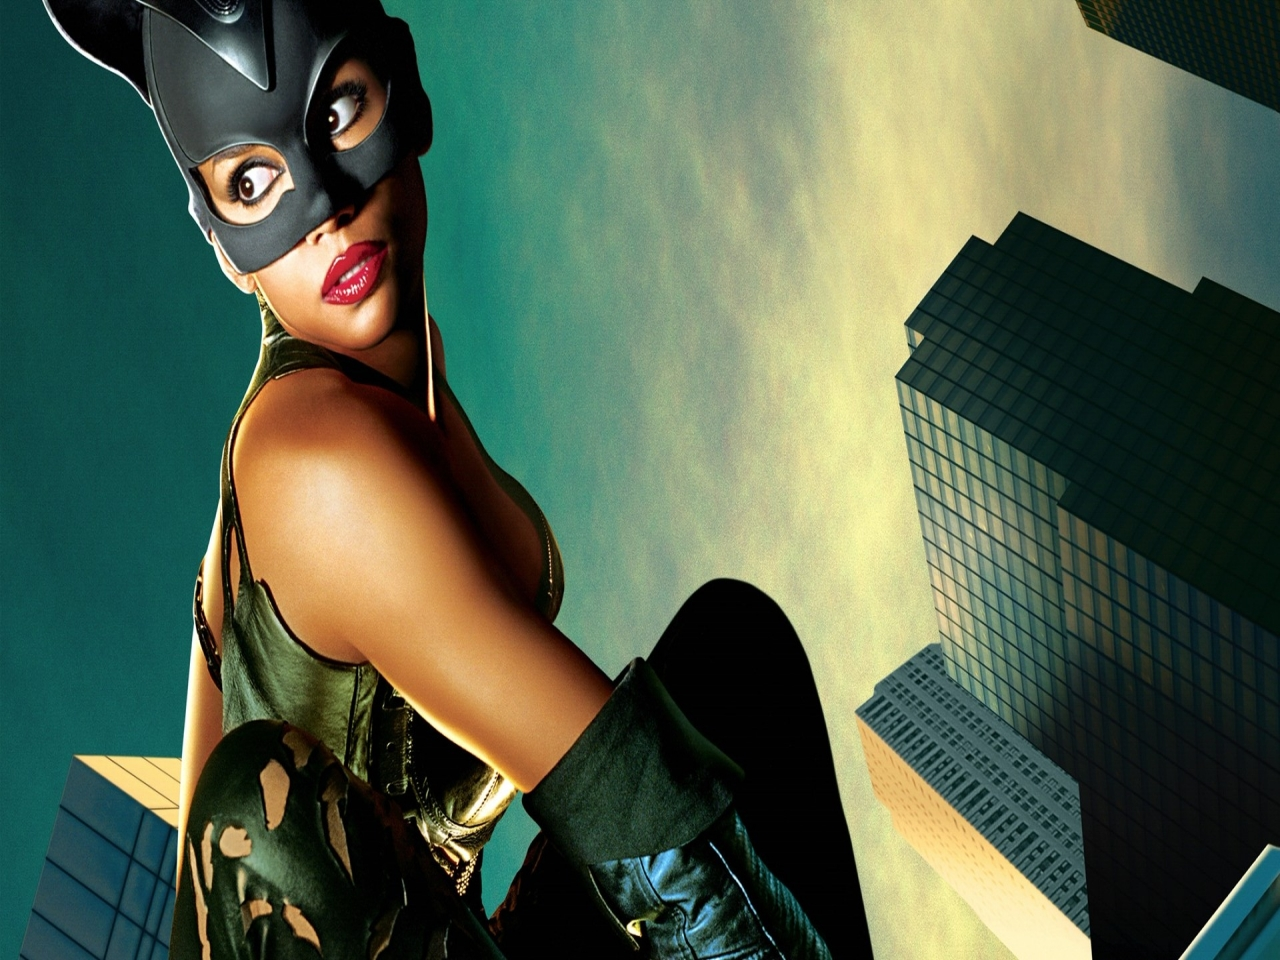 Abstract Apple Catwoman Dark Knight Hd Wallpaper 2560×1440 Wallpaper